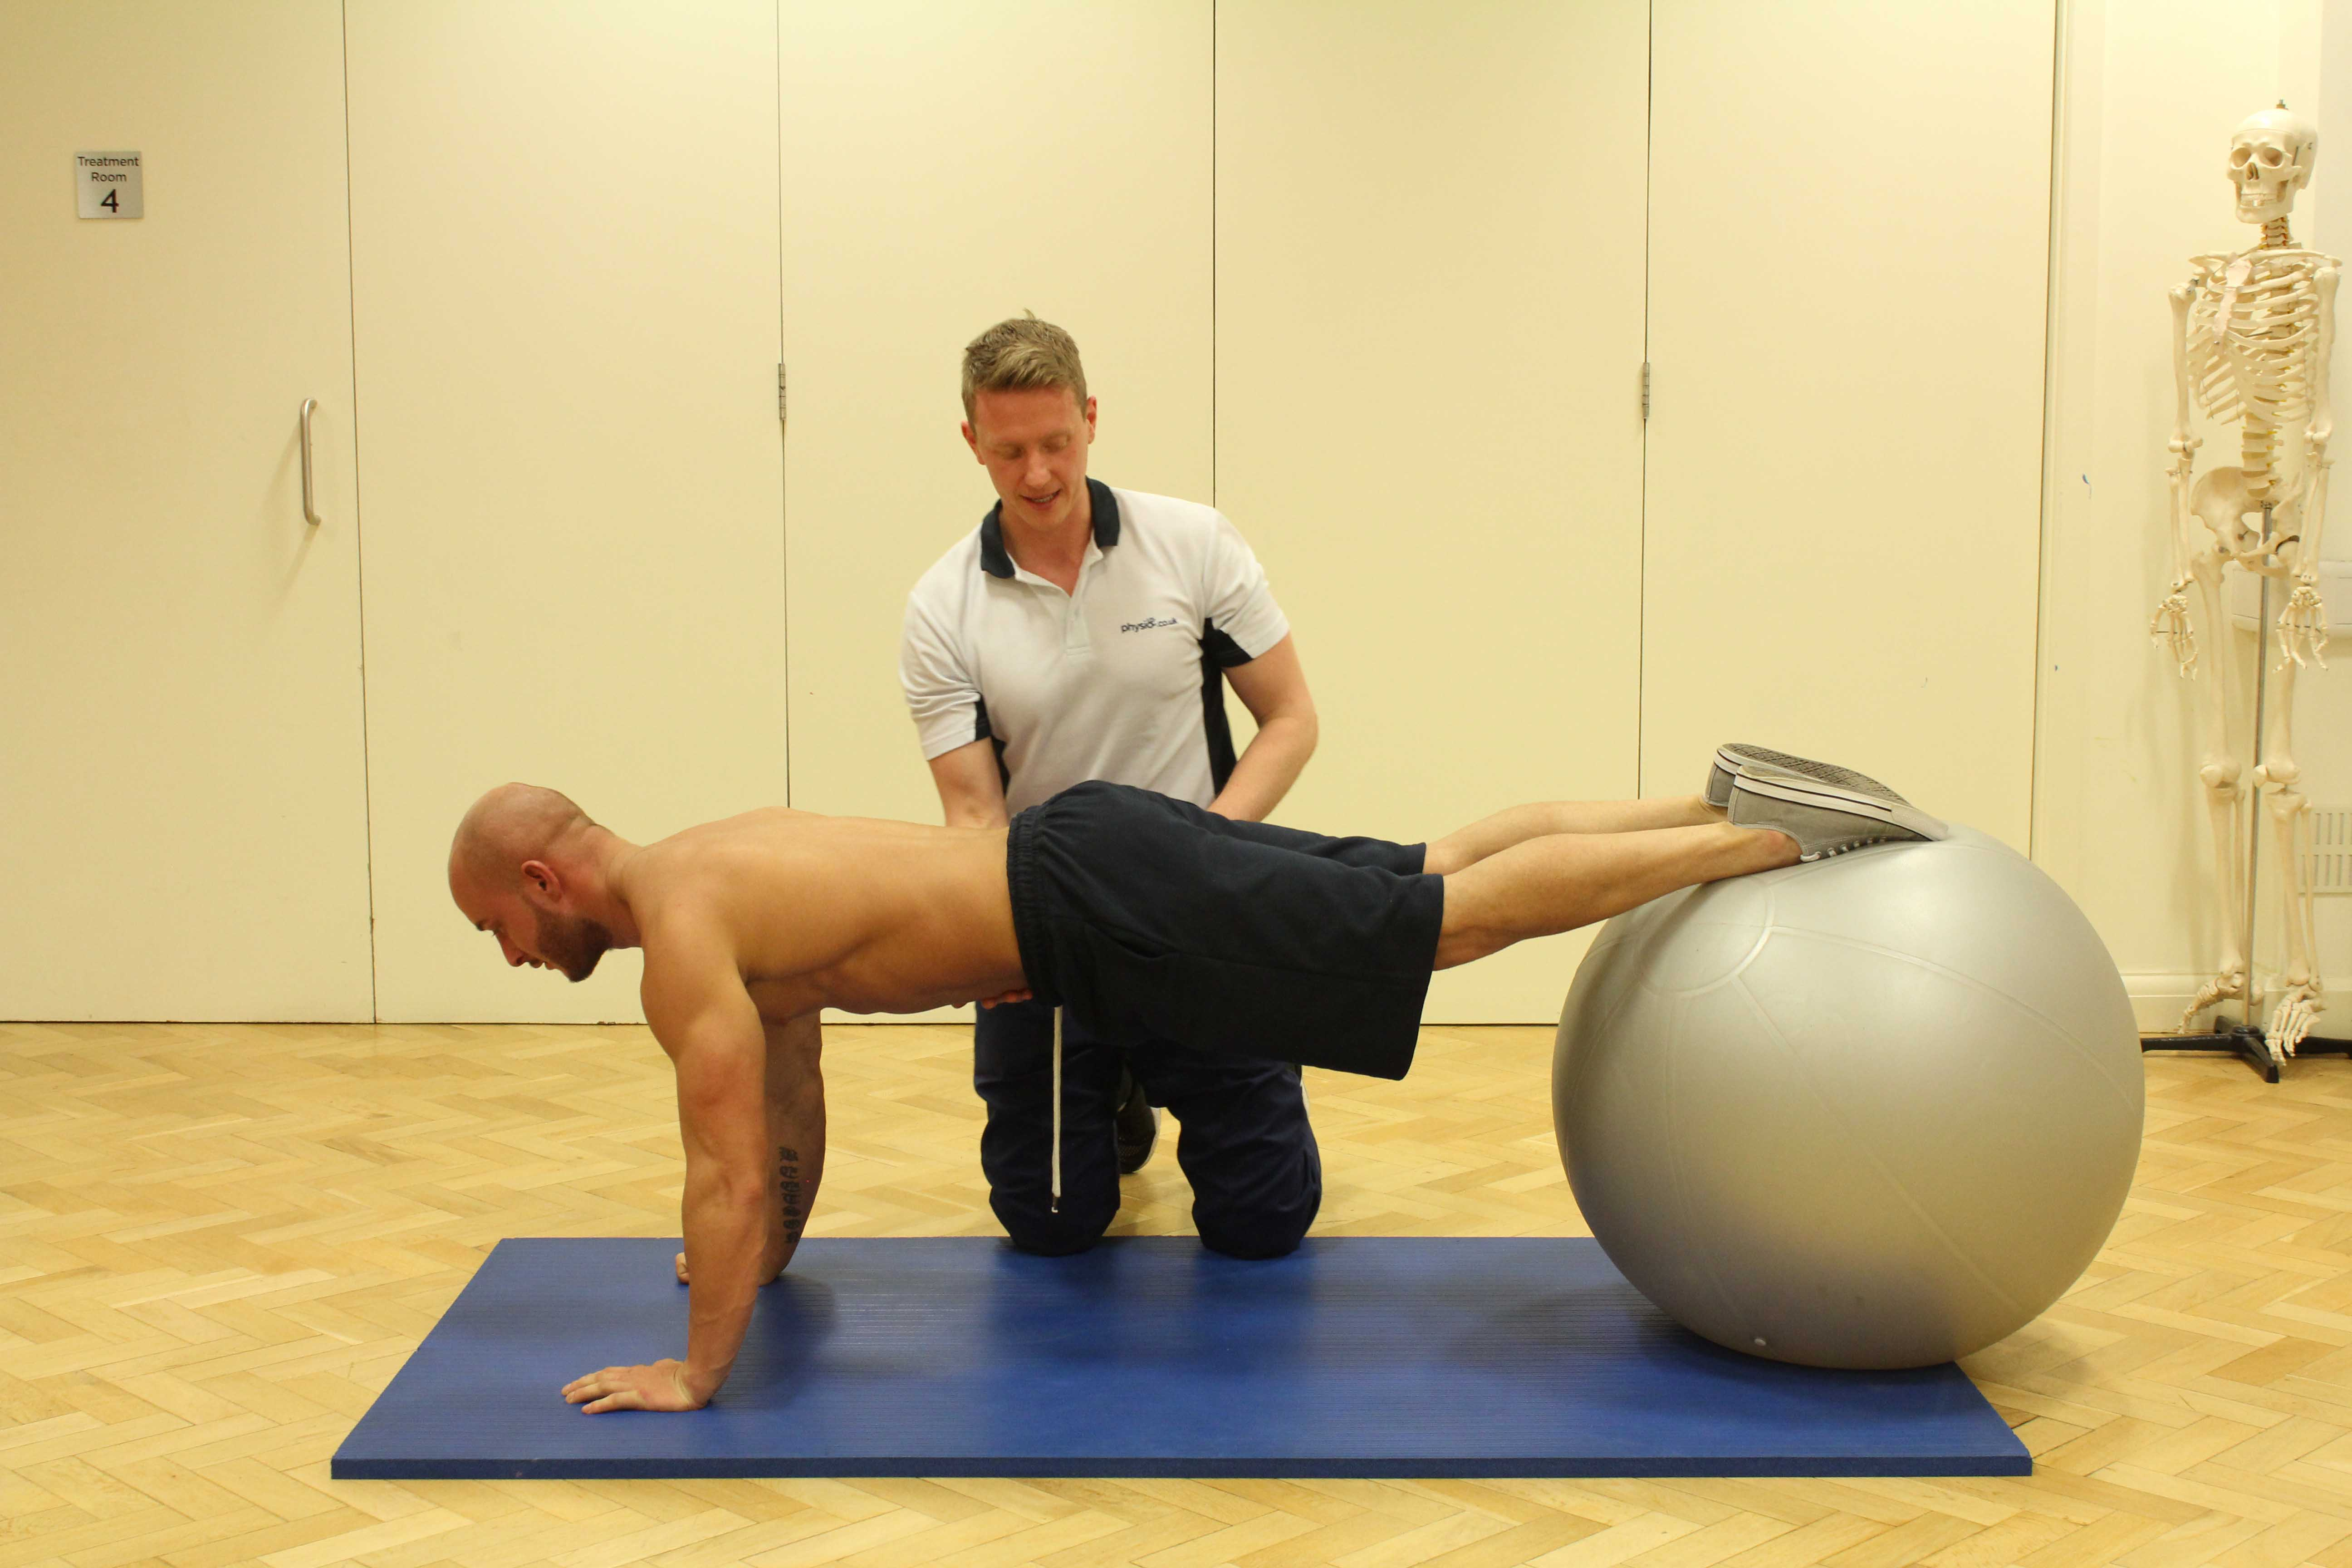 Strengthening exercises fro the chest muscles supervised by MSK Physiotherapist